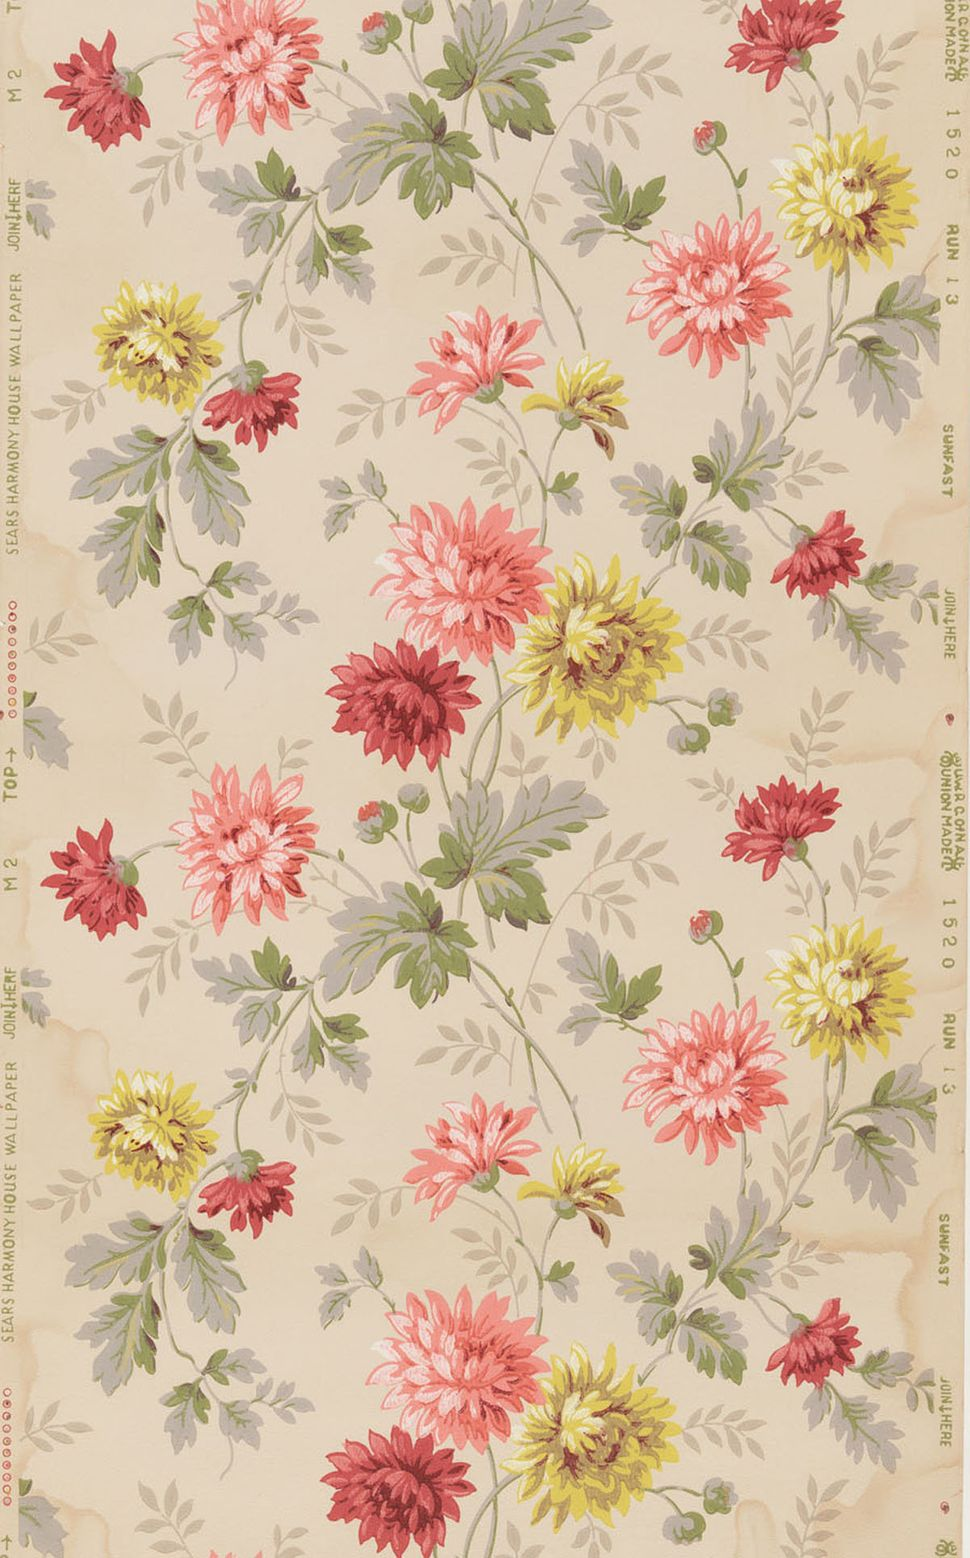 Unused roll of wallpaper. Lime green, light and dark pink flowers with sprays of green and gray foliage on tan ground. Sears,